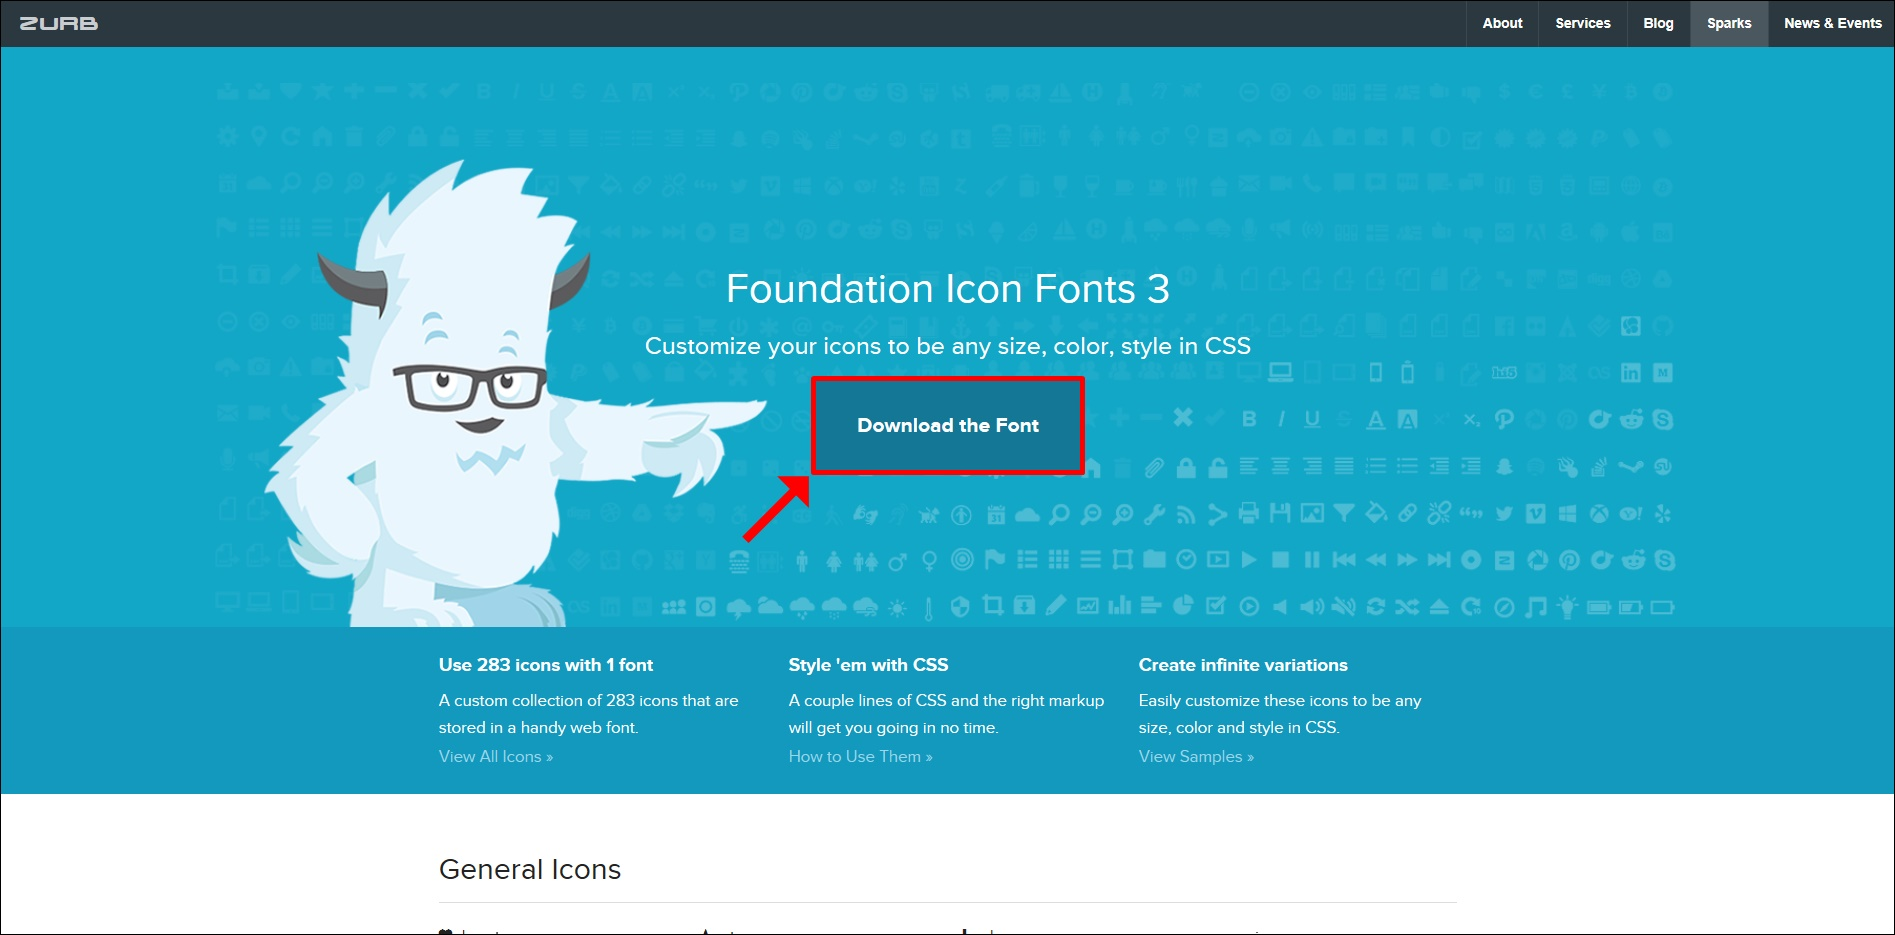 Foundation Icon Fontsの公式サイト